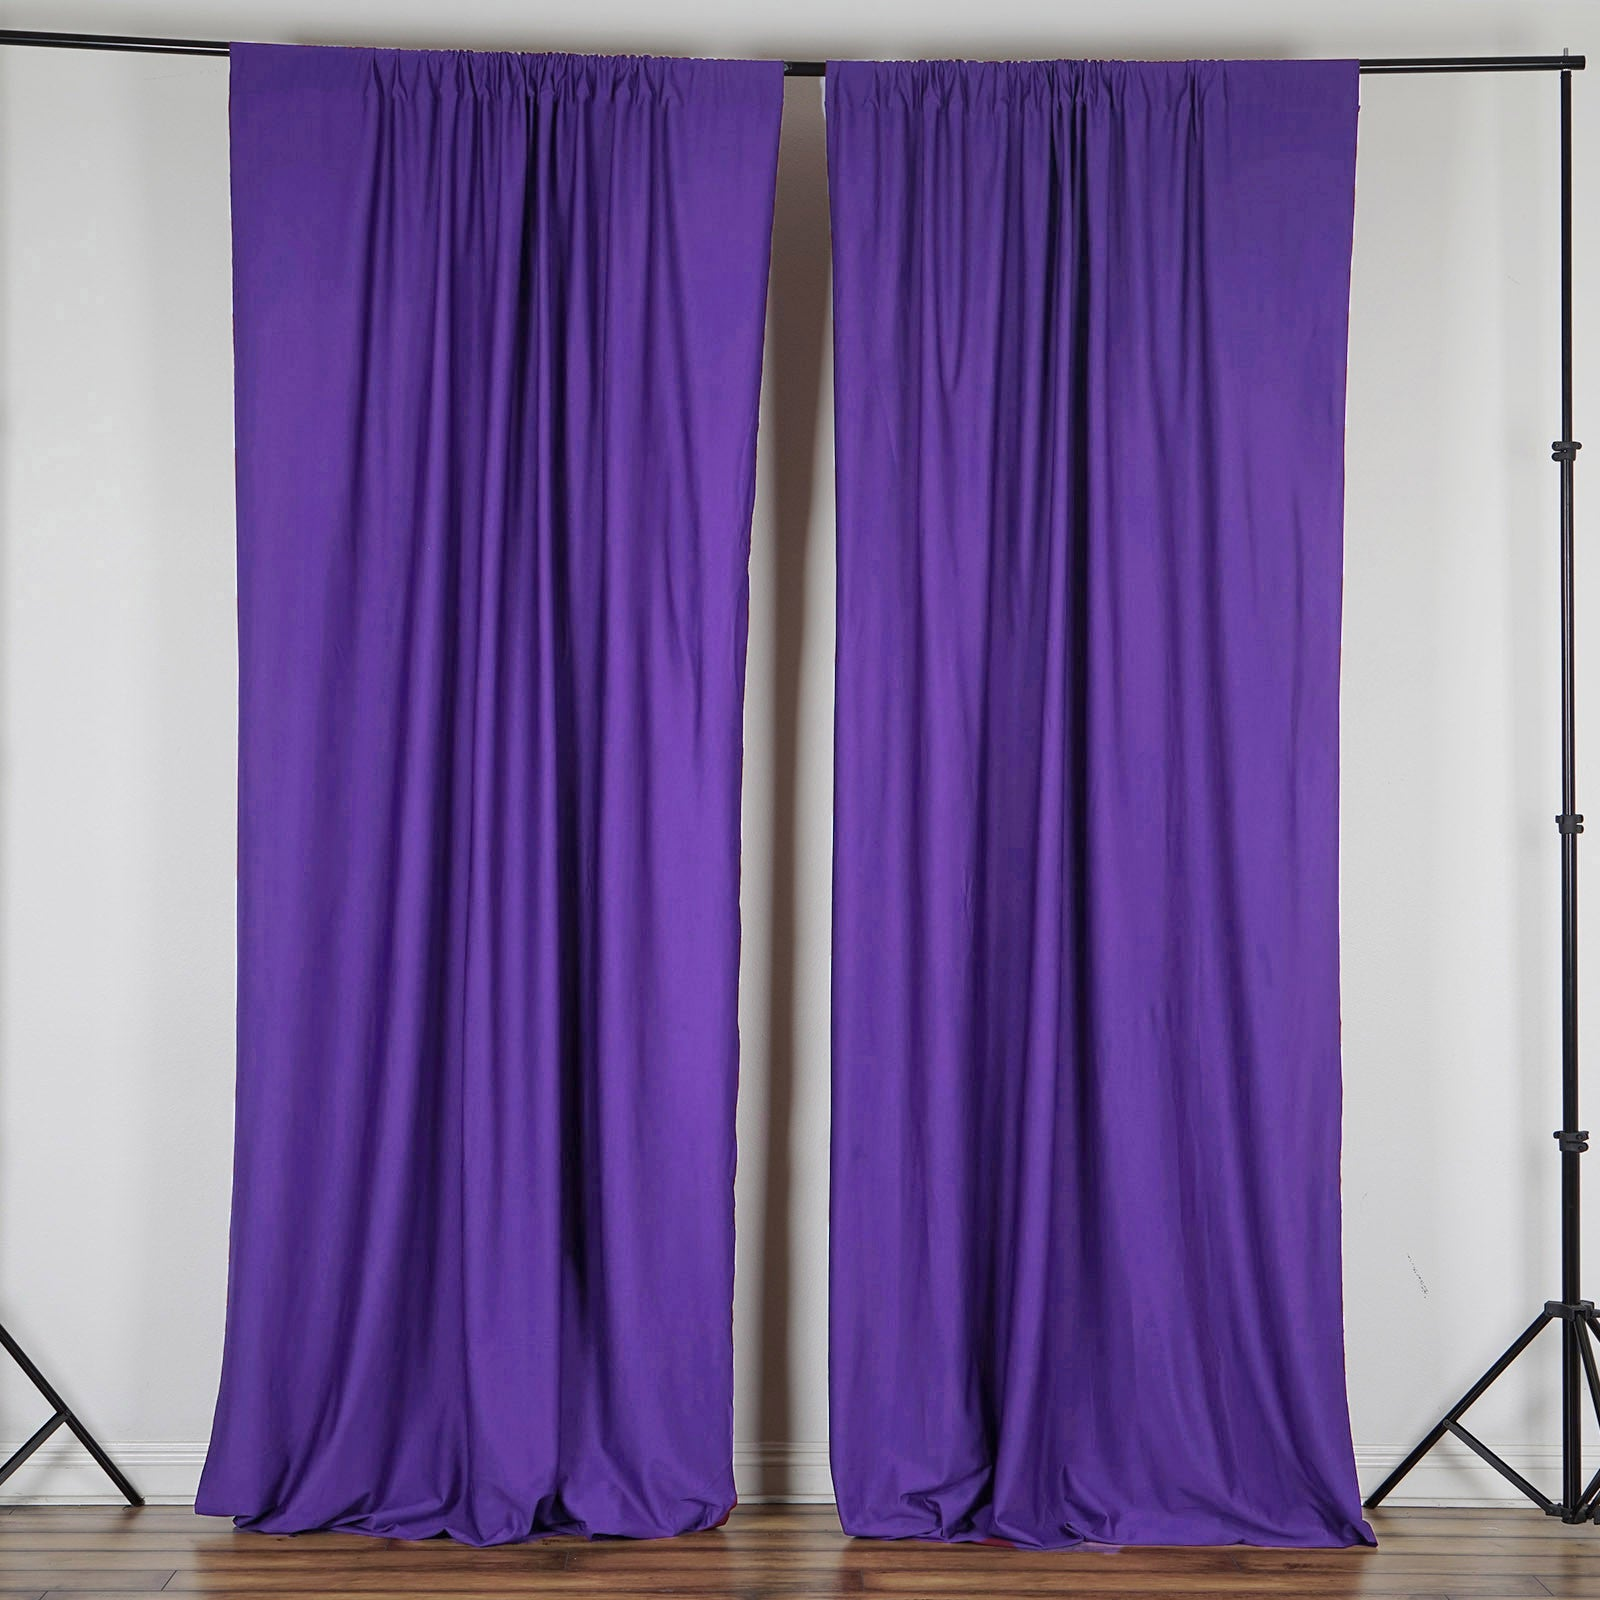 voile purple no com panels ip rod curtains walmart sheer pocket curtain calypso panel